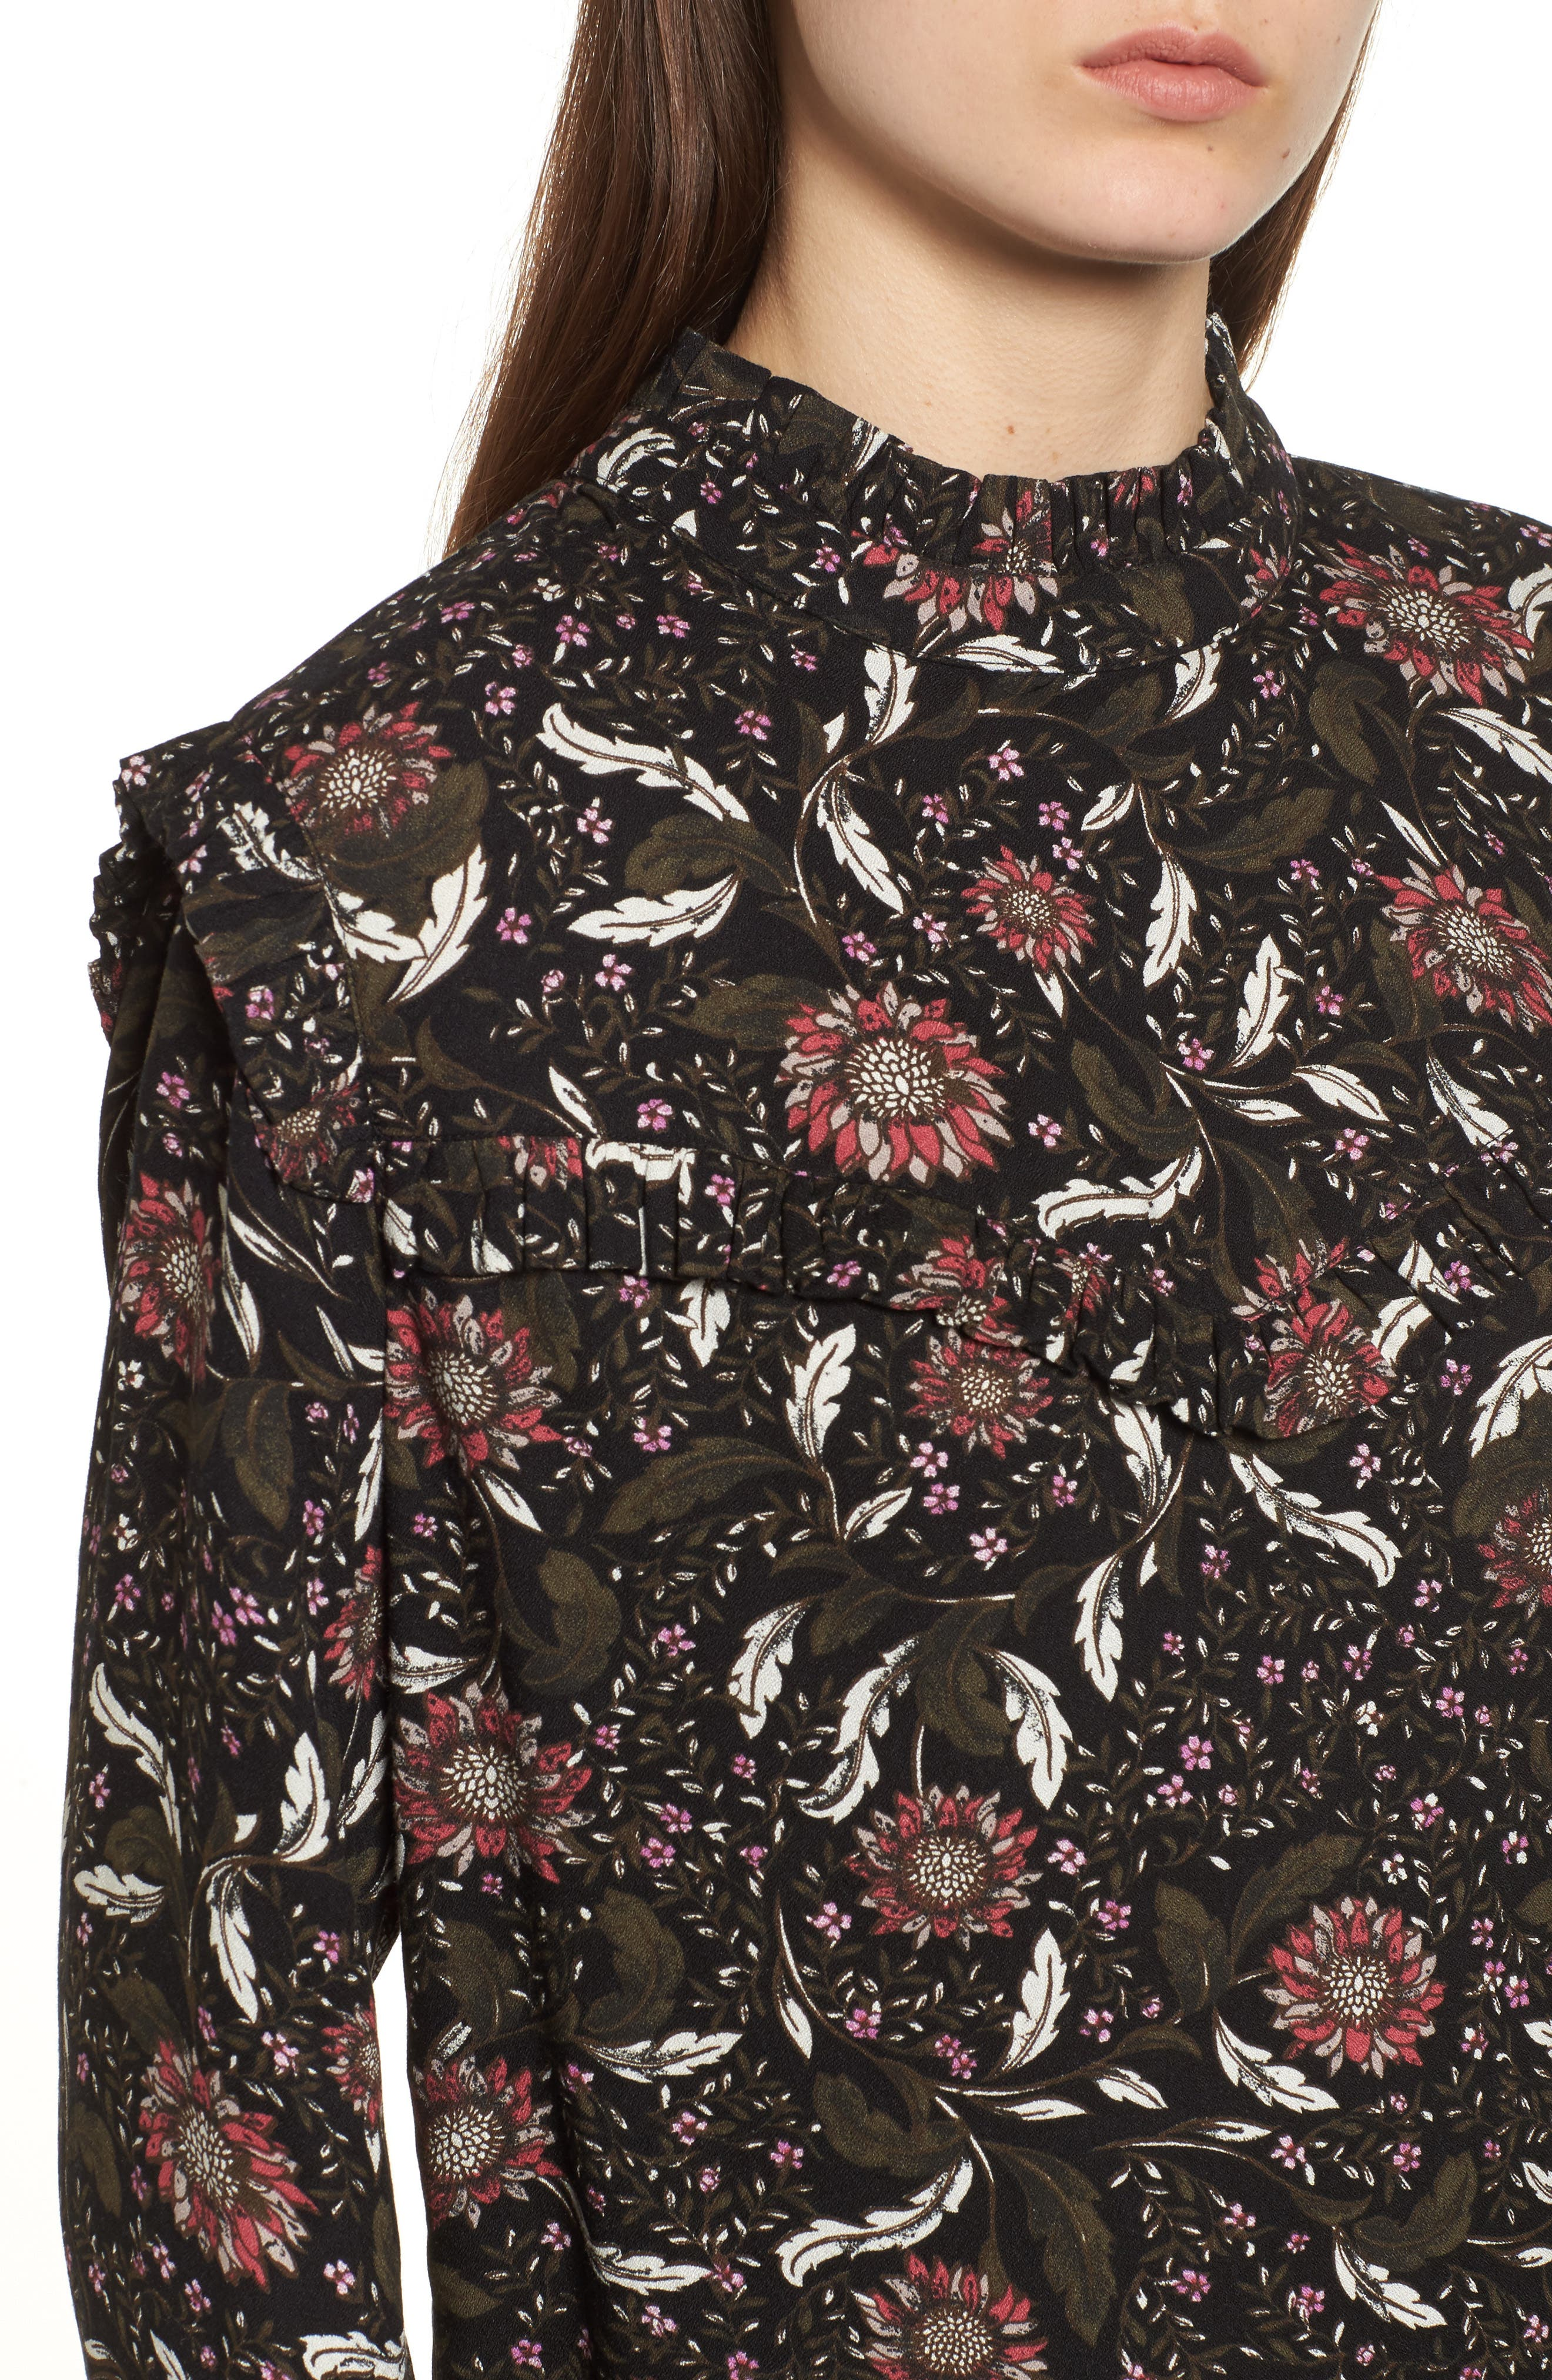 Ruffle Top,                             Alternate thumbnail 3, color,                             Black Crowded Floral